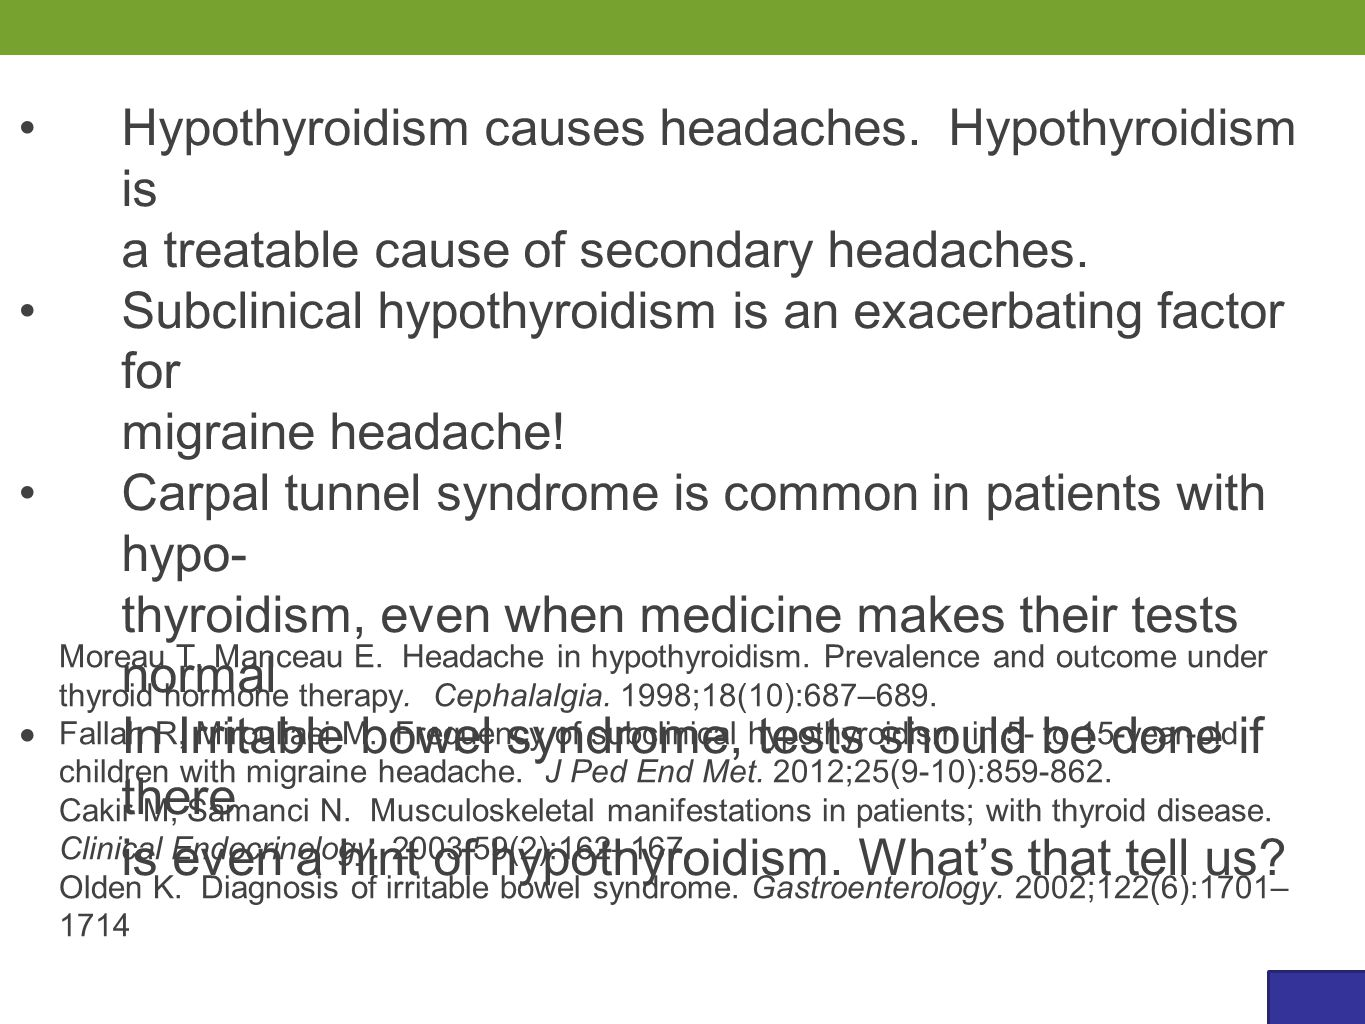 Hypothyroidism causes headaches. Hypothyroidism is a treatable cause of secondary headaches. Subclinical hypothyroidism is an exacerbating factor for